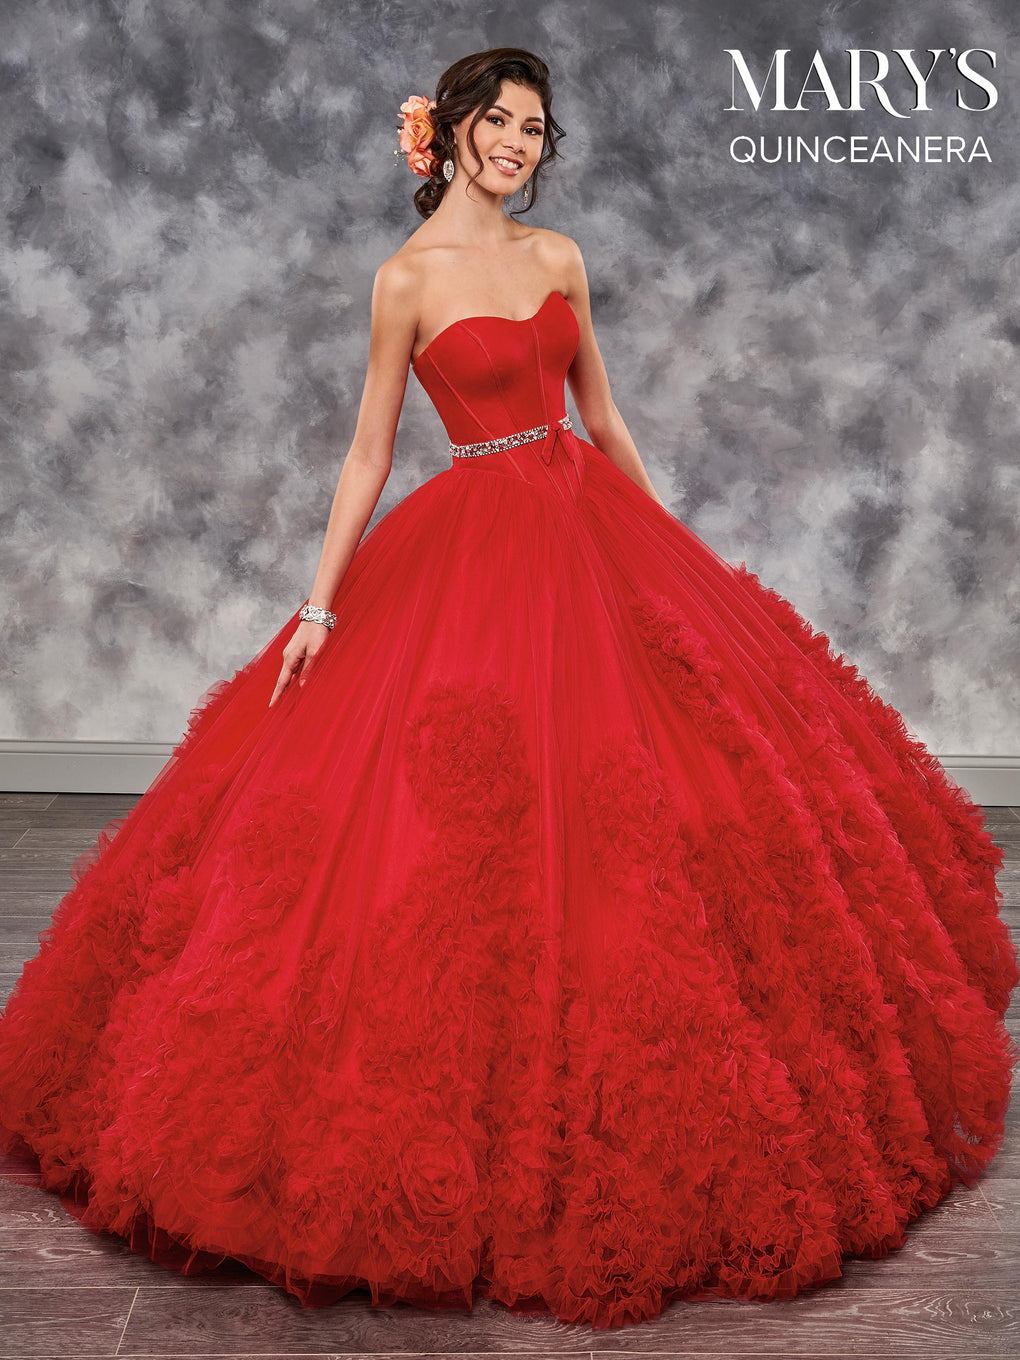 Marys Quinceanera Dresses in Ivory, Powder Blue, Red, or Watermelon Color